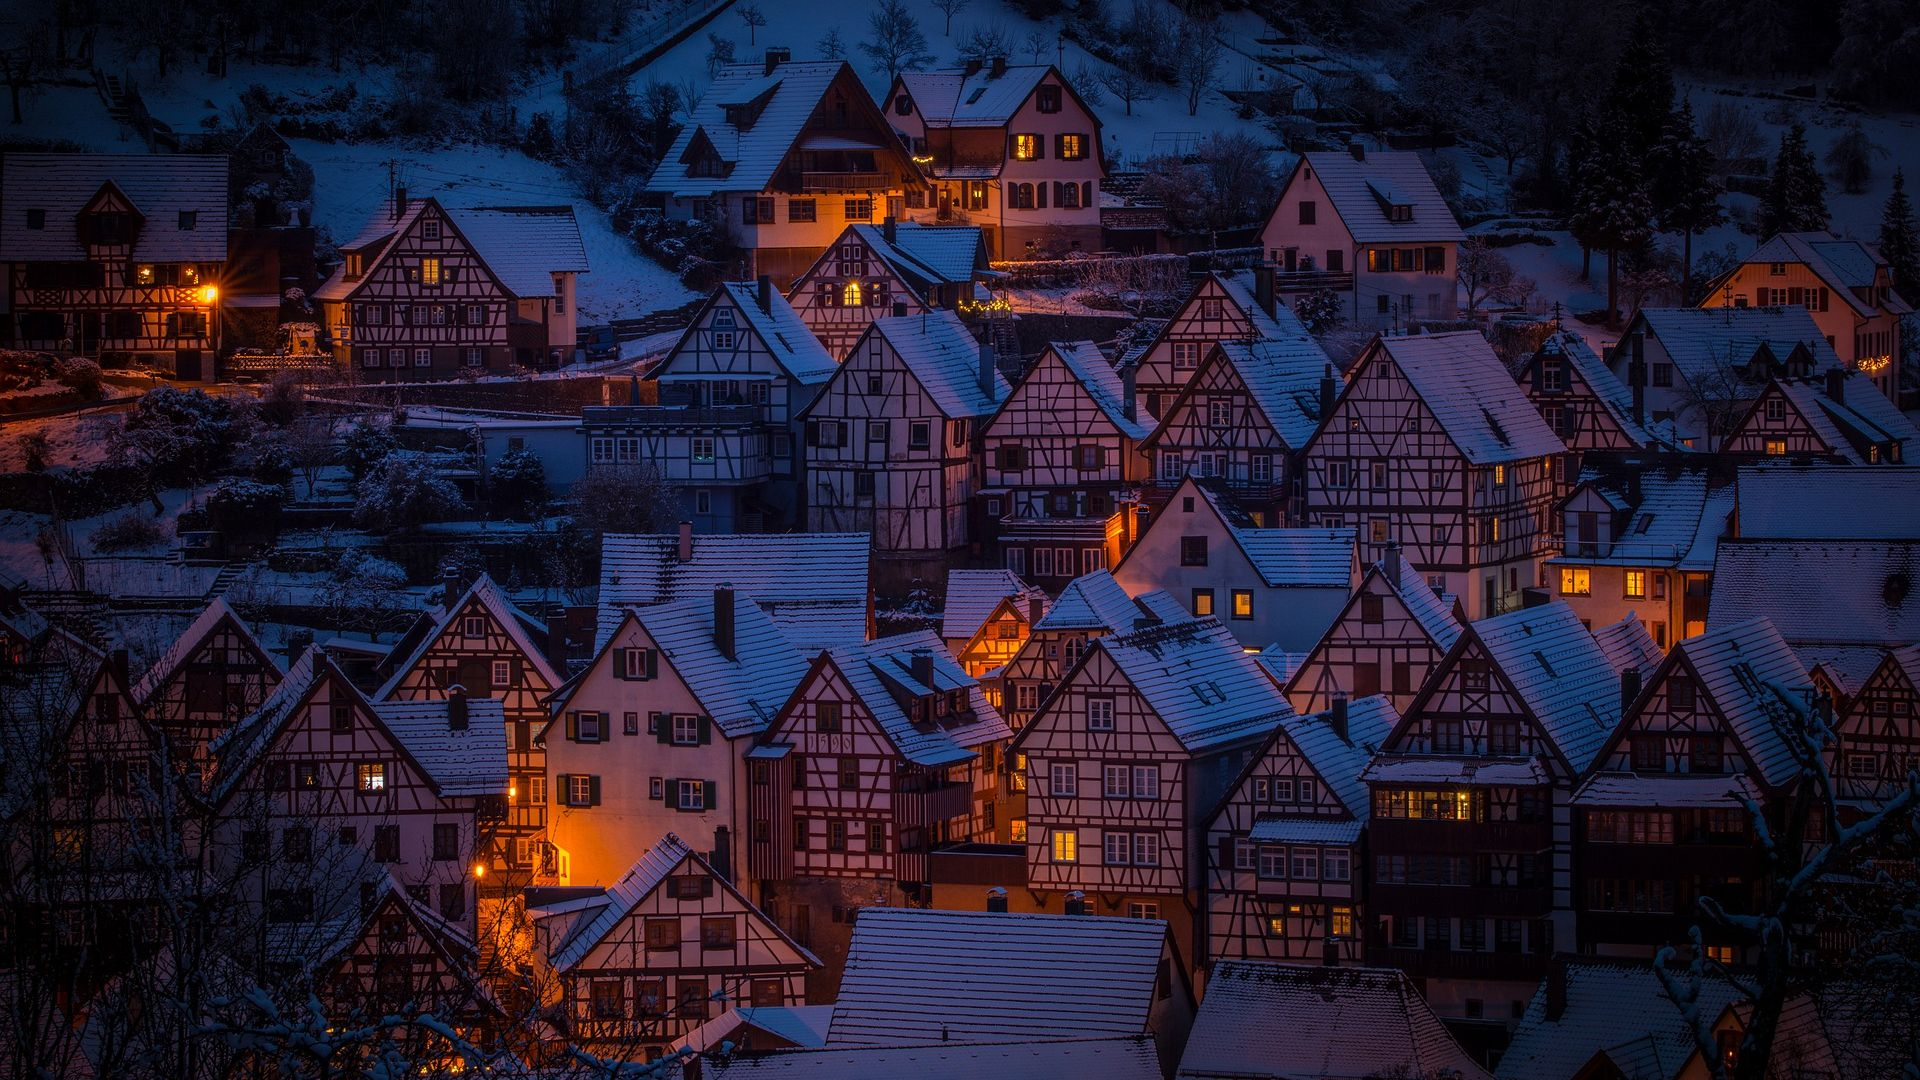 Winter Night In The City Hd Wallpaper Background Image